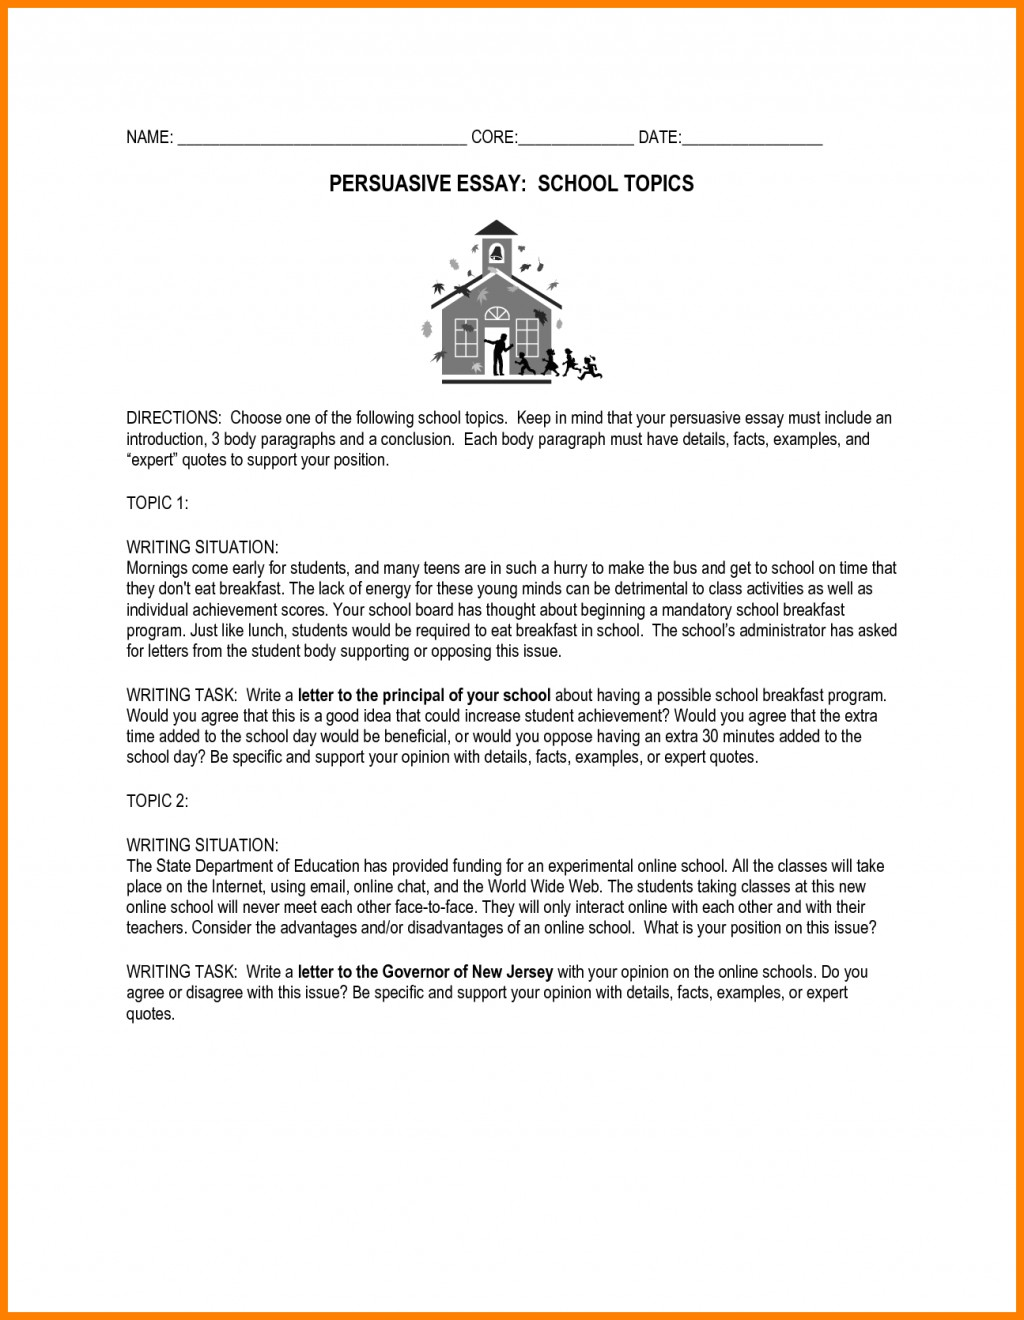 009 Essay Example Persuasive Topics Middle School High Essays Uniforms Examples For Address Ex About Speech Education Rules Issues Uniform Imposing Students Interest Pdf Prompts Large